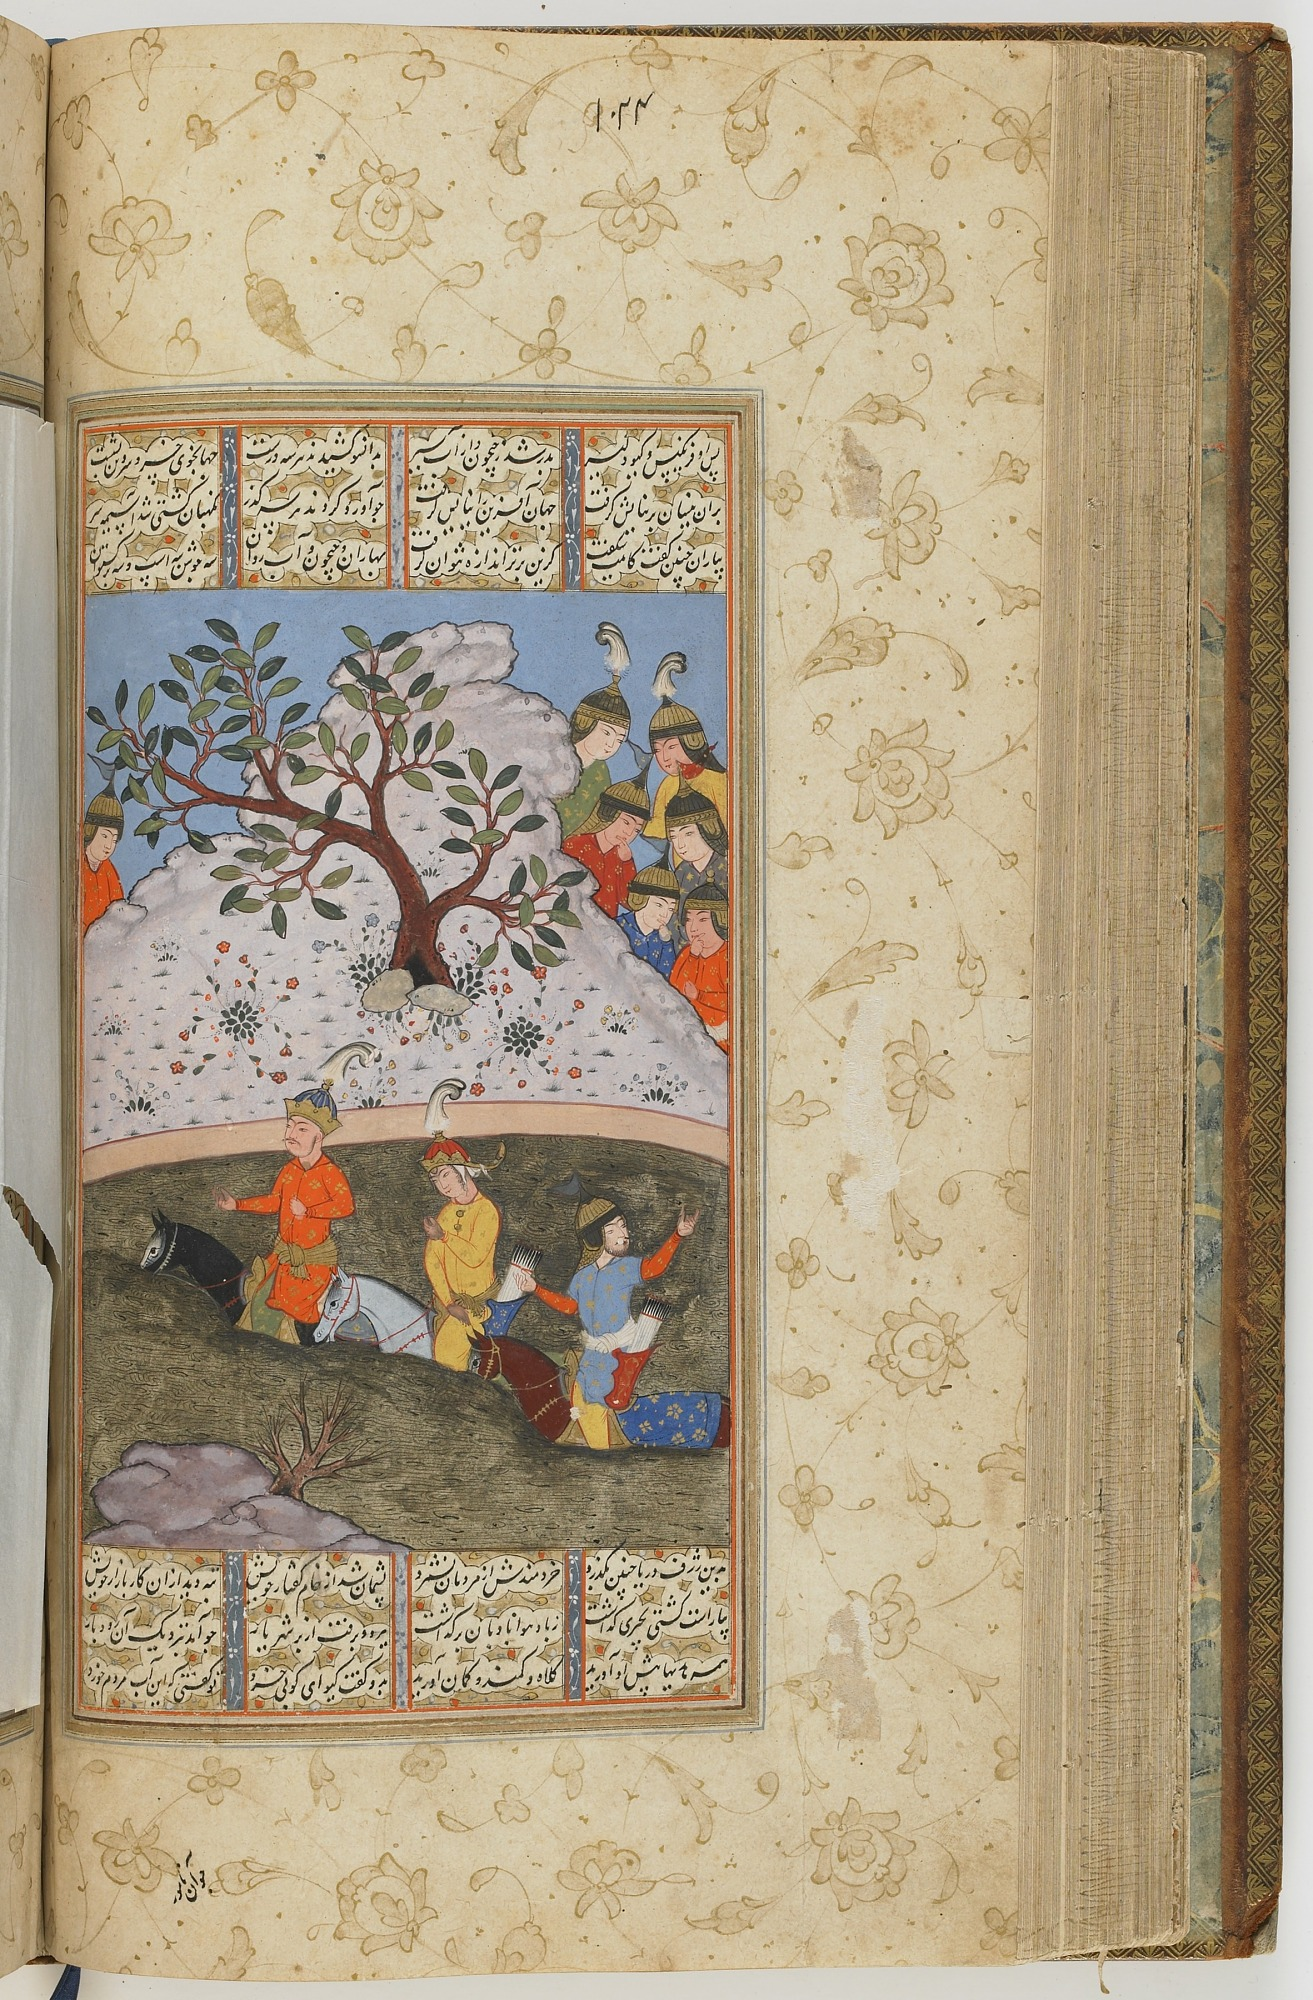 folio 125 verso: The Shahnama (Book of kings) by Firdausi (d. 1020)